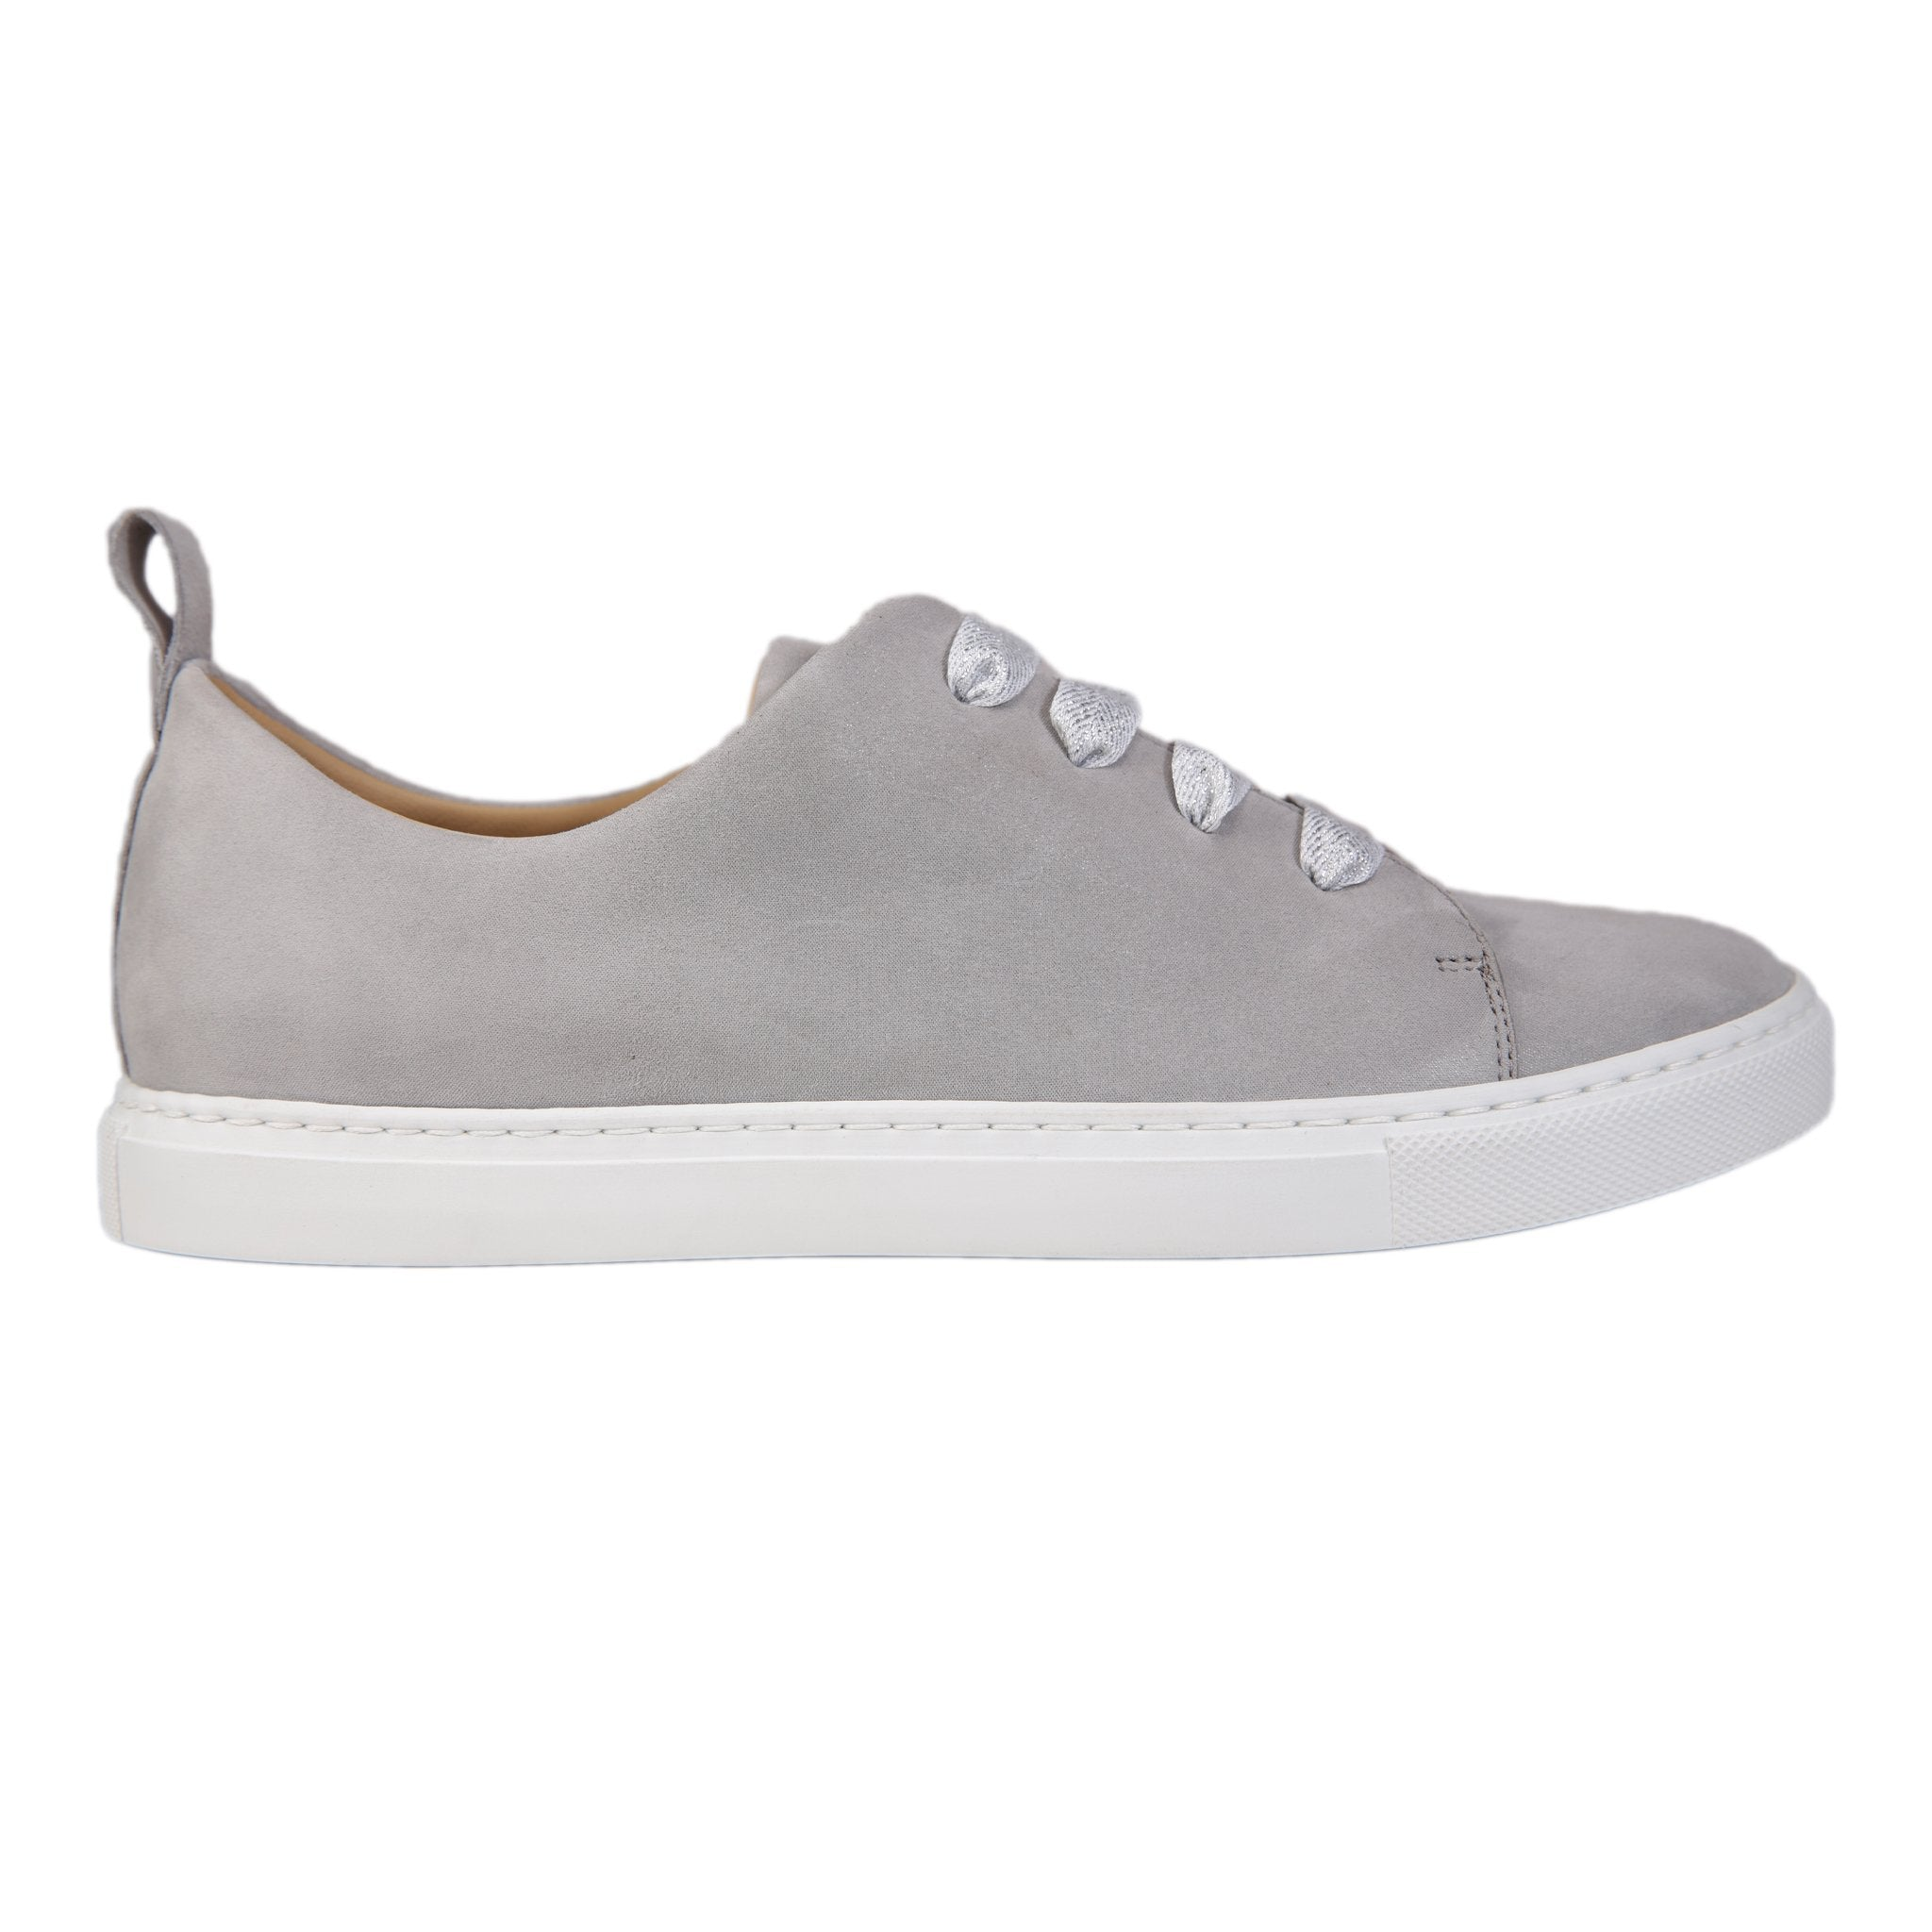 GROSSETO - Hydra Grigio, VIAJIYU - Women's Hand Made Sustainable Luxury Shoes. Made in Italy. Made to Order.